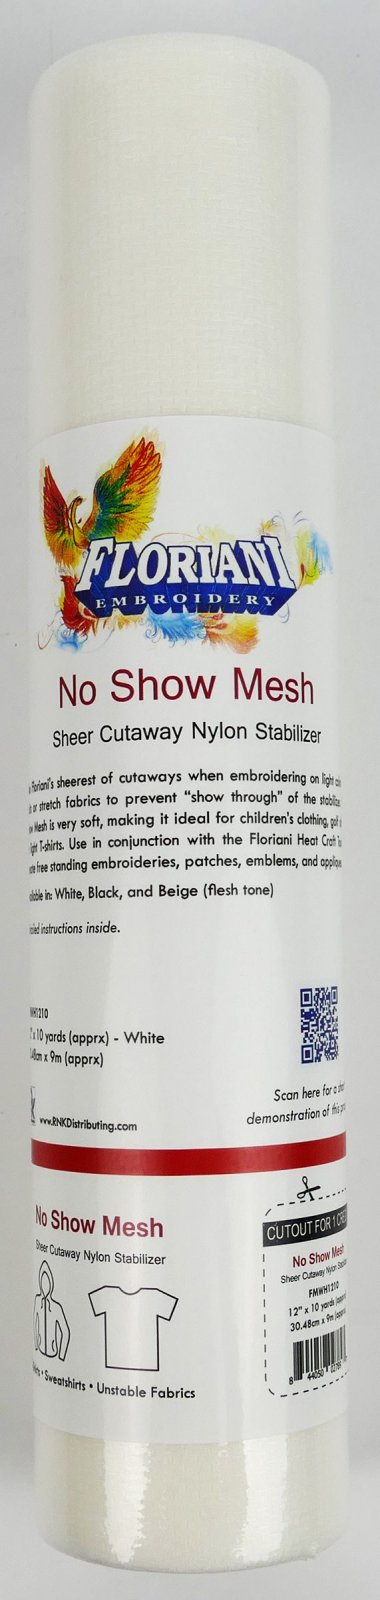 No Show Mesh : Sheer Cutaway Nylon Stabilizer - White - 12 x 10 yards - Floriani